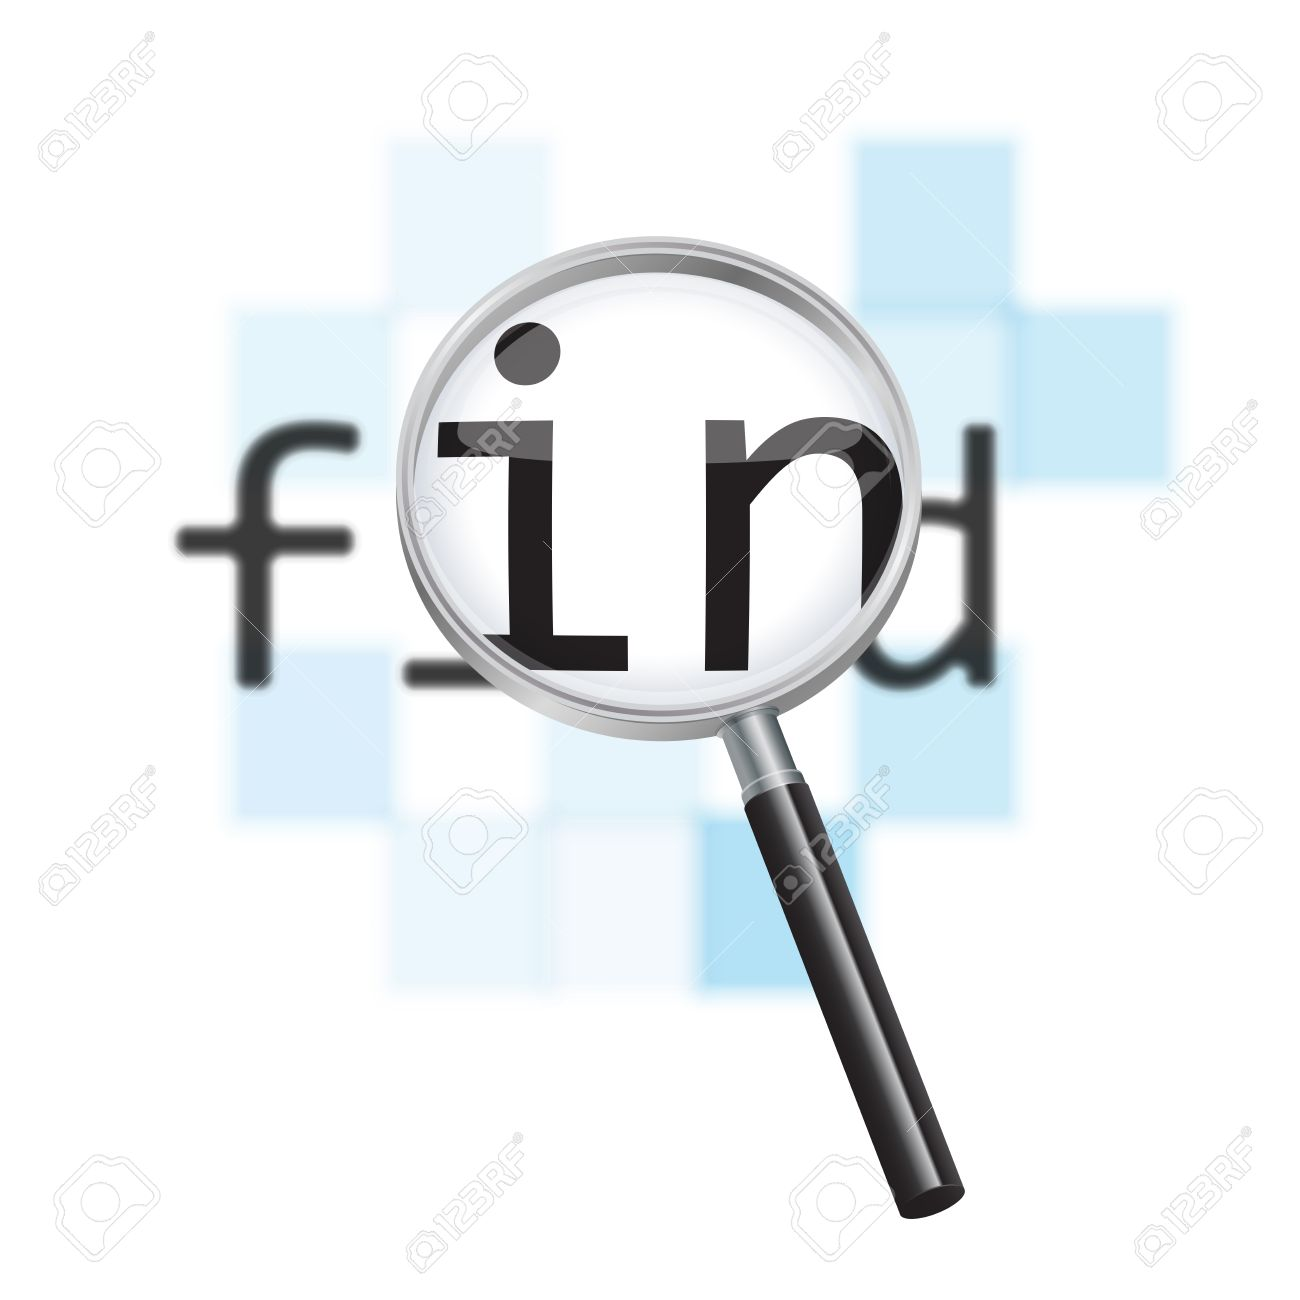 How to find clipart on word.